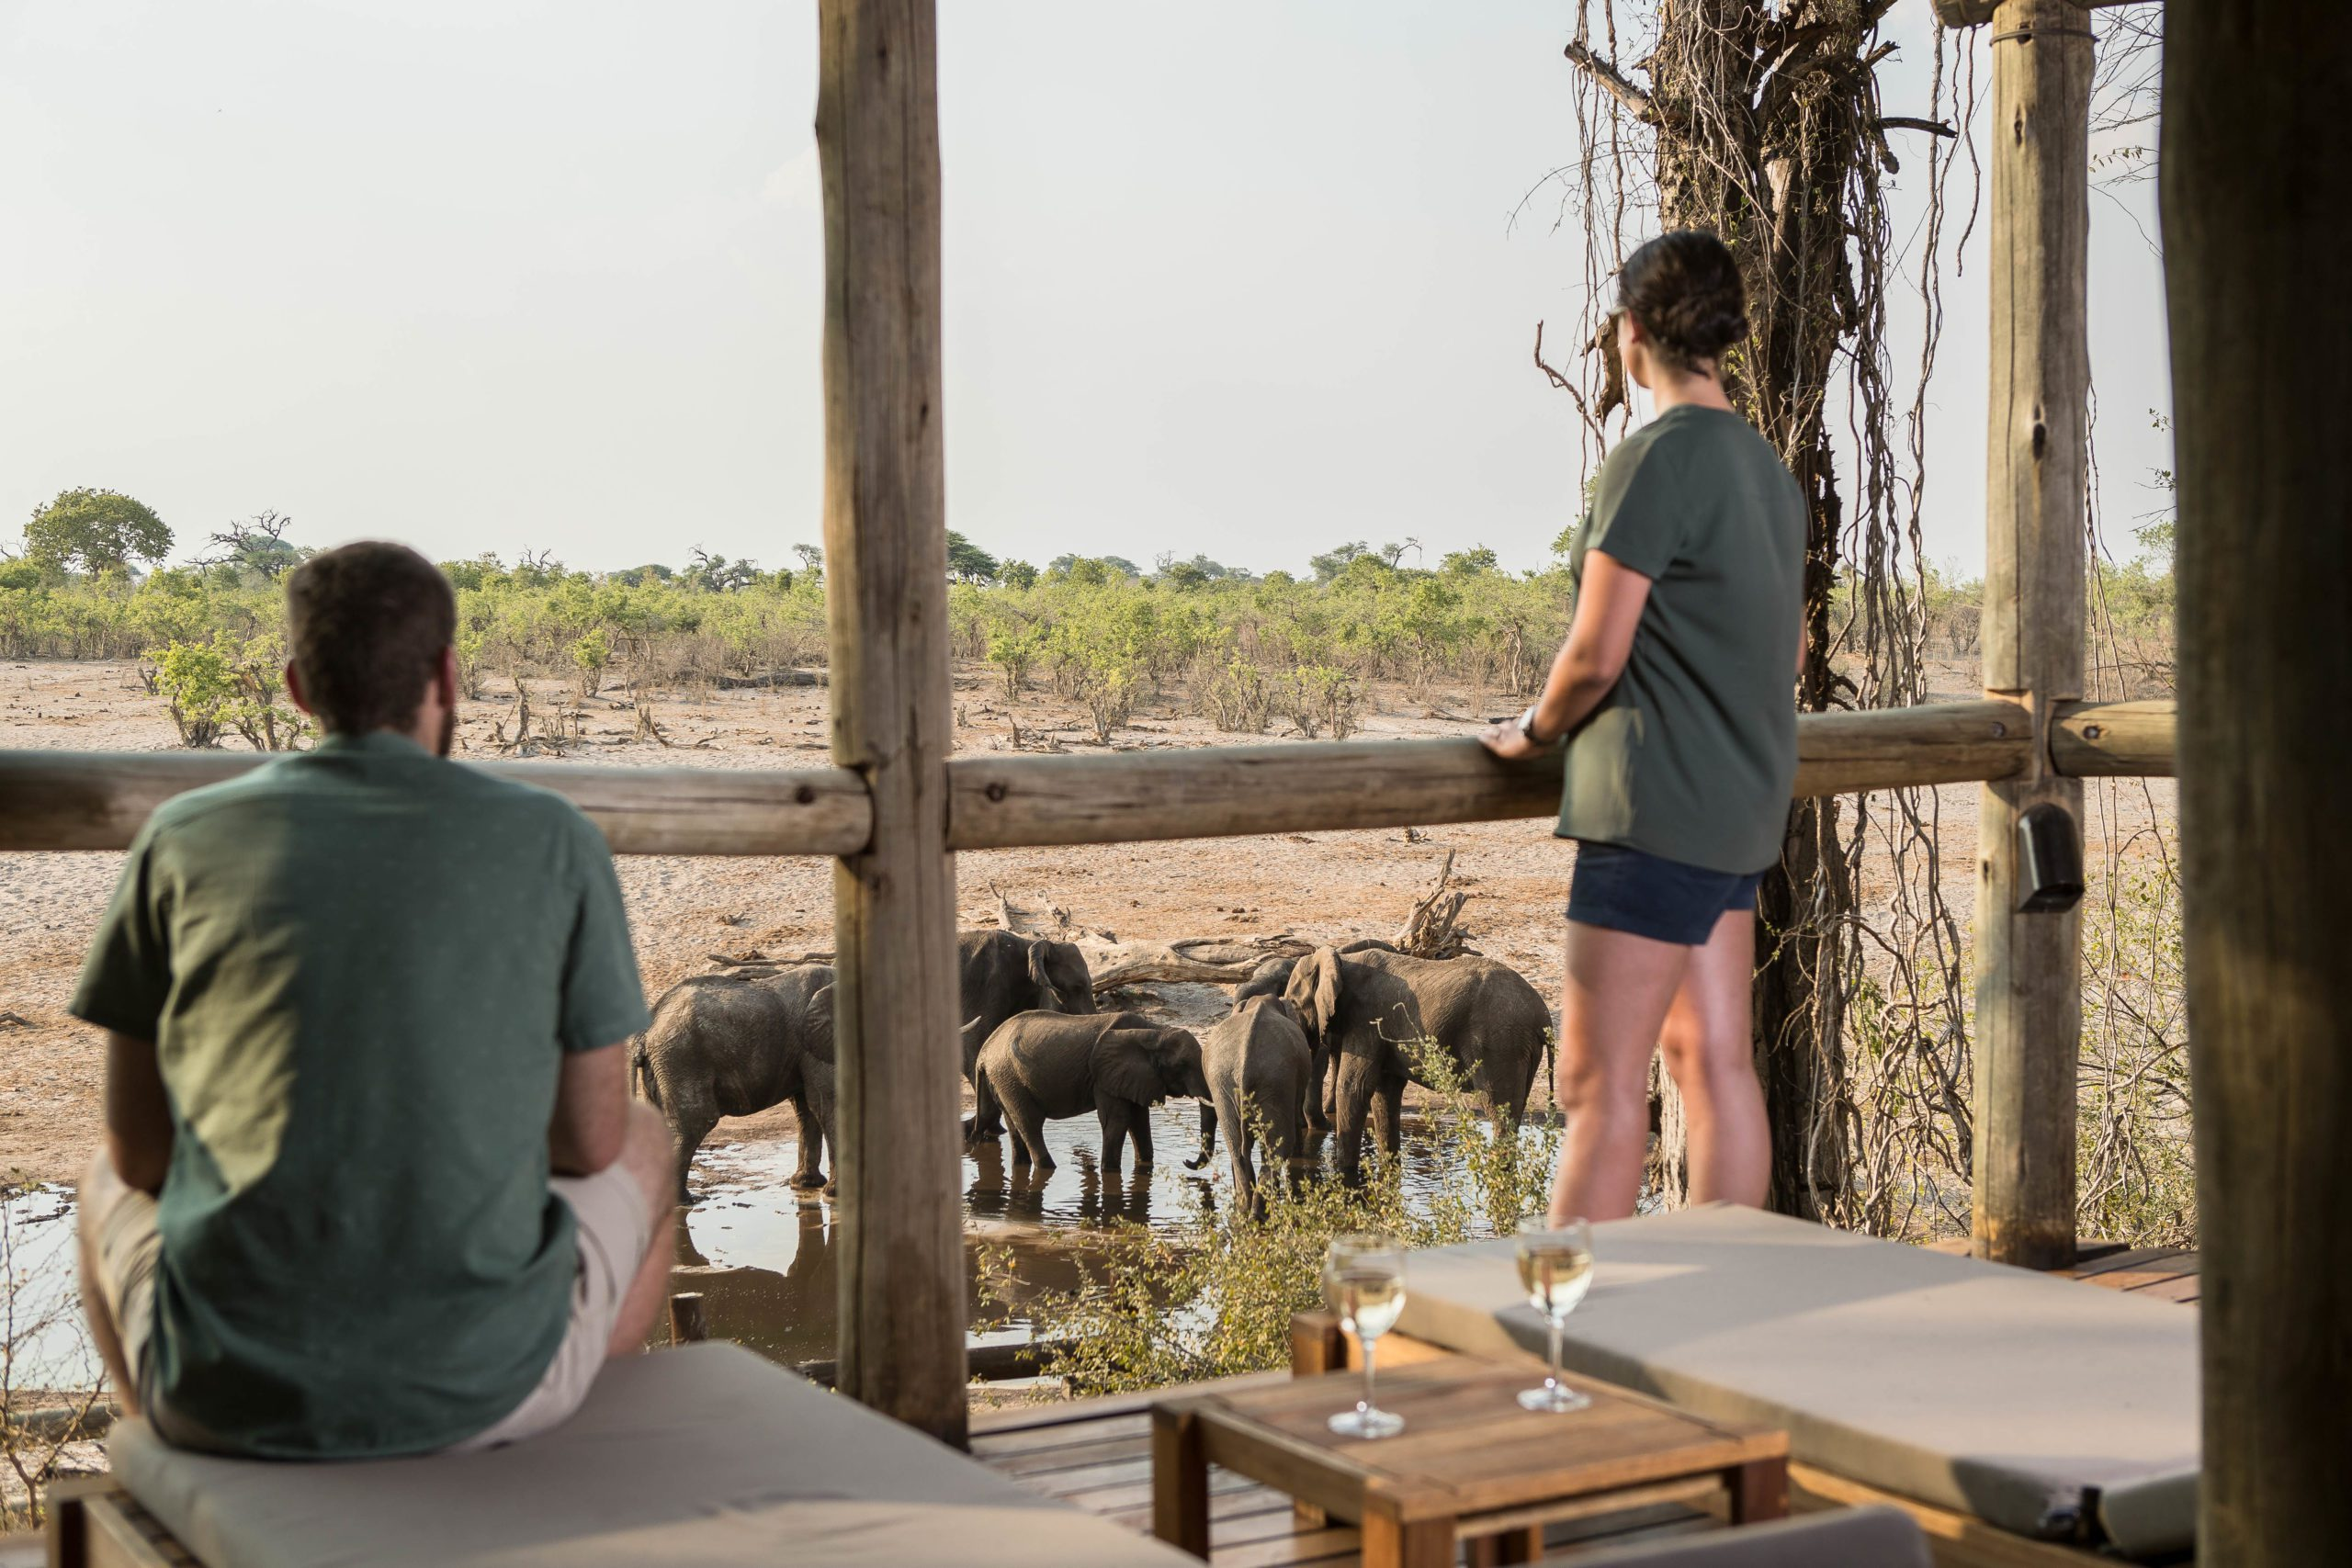 Savute Safari Camp guests at main area observing elephants at the watering hole